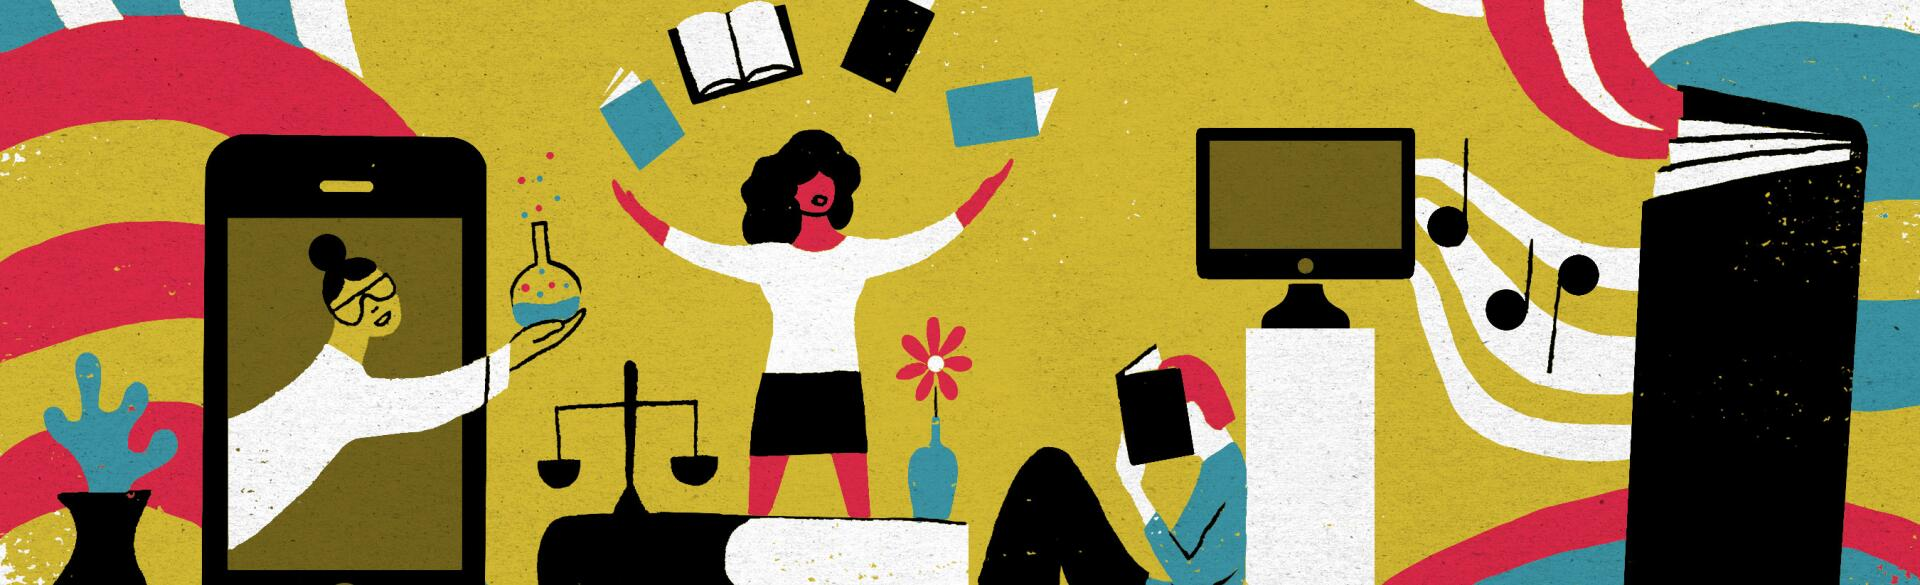 illustration of ladies engaging in online learning activities